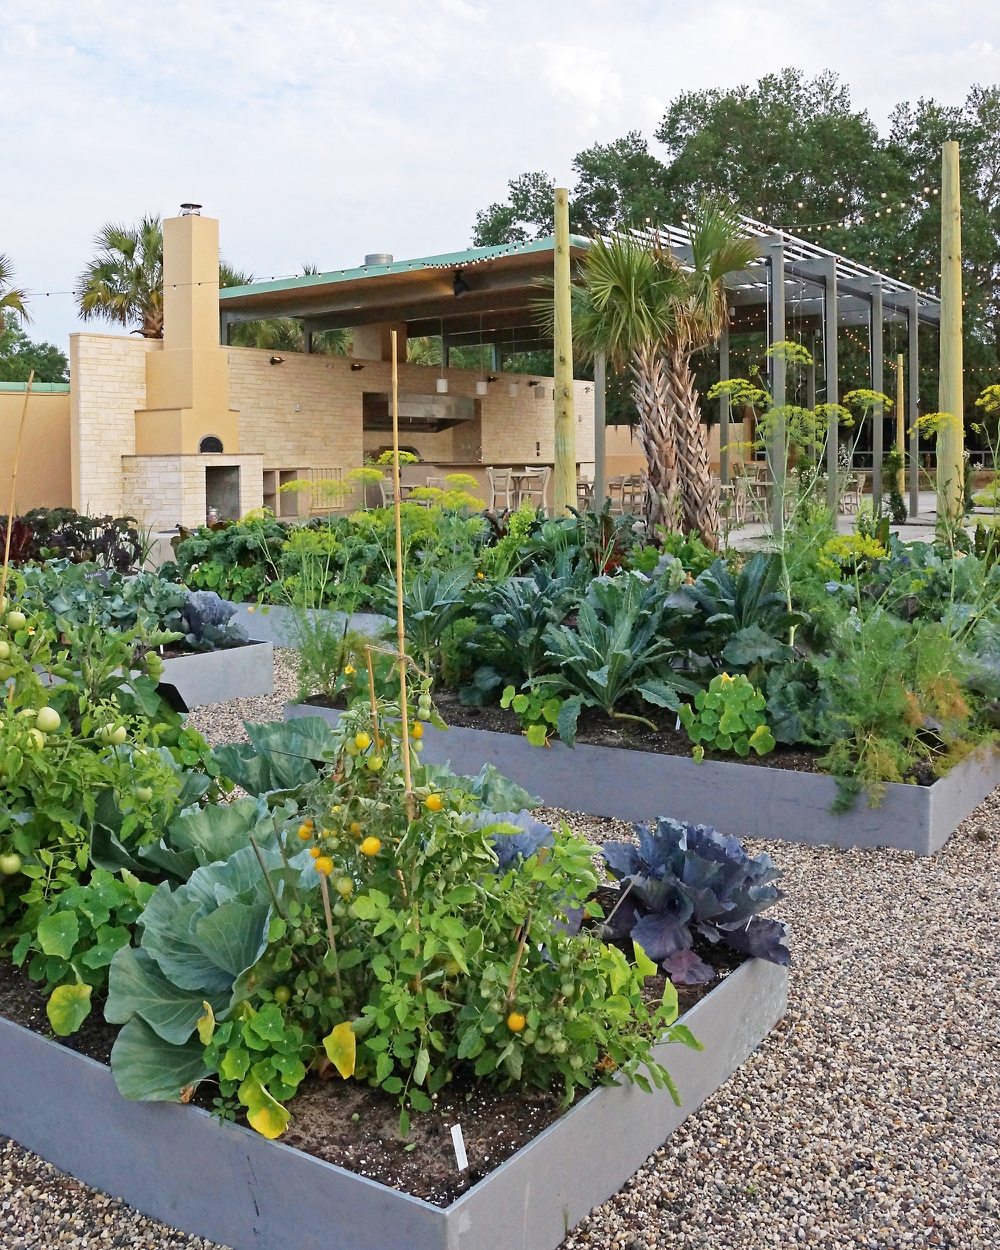 Backyard Kitchen Garden: Bok Tower Gardens Outdoor Kitchen And Edible Garden Open